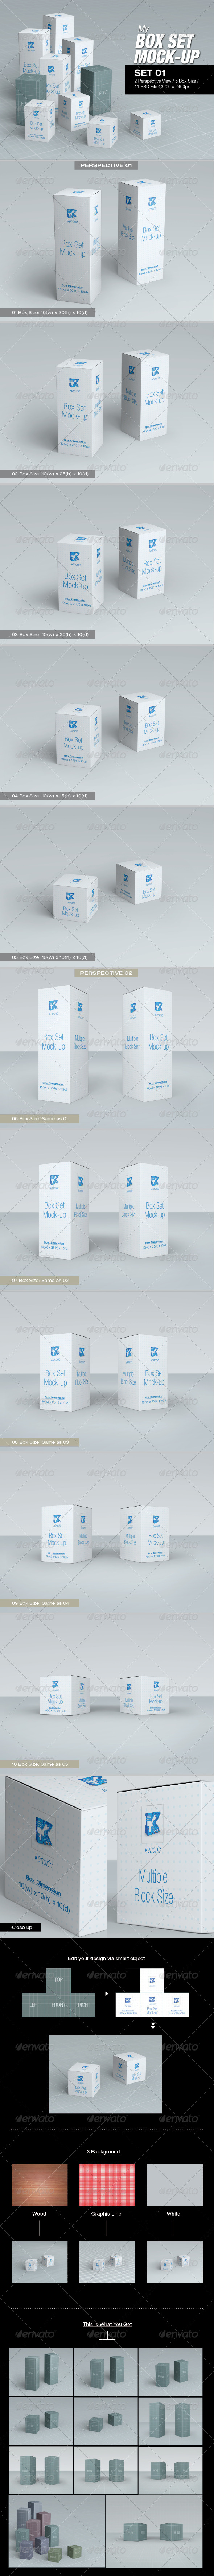 GraphicRiver MyBox Set Mock-up 01 8764421